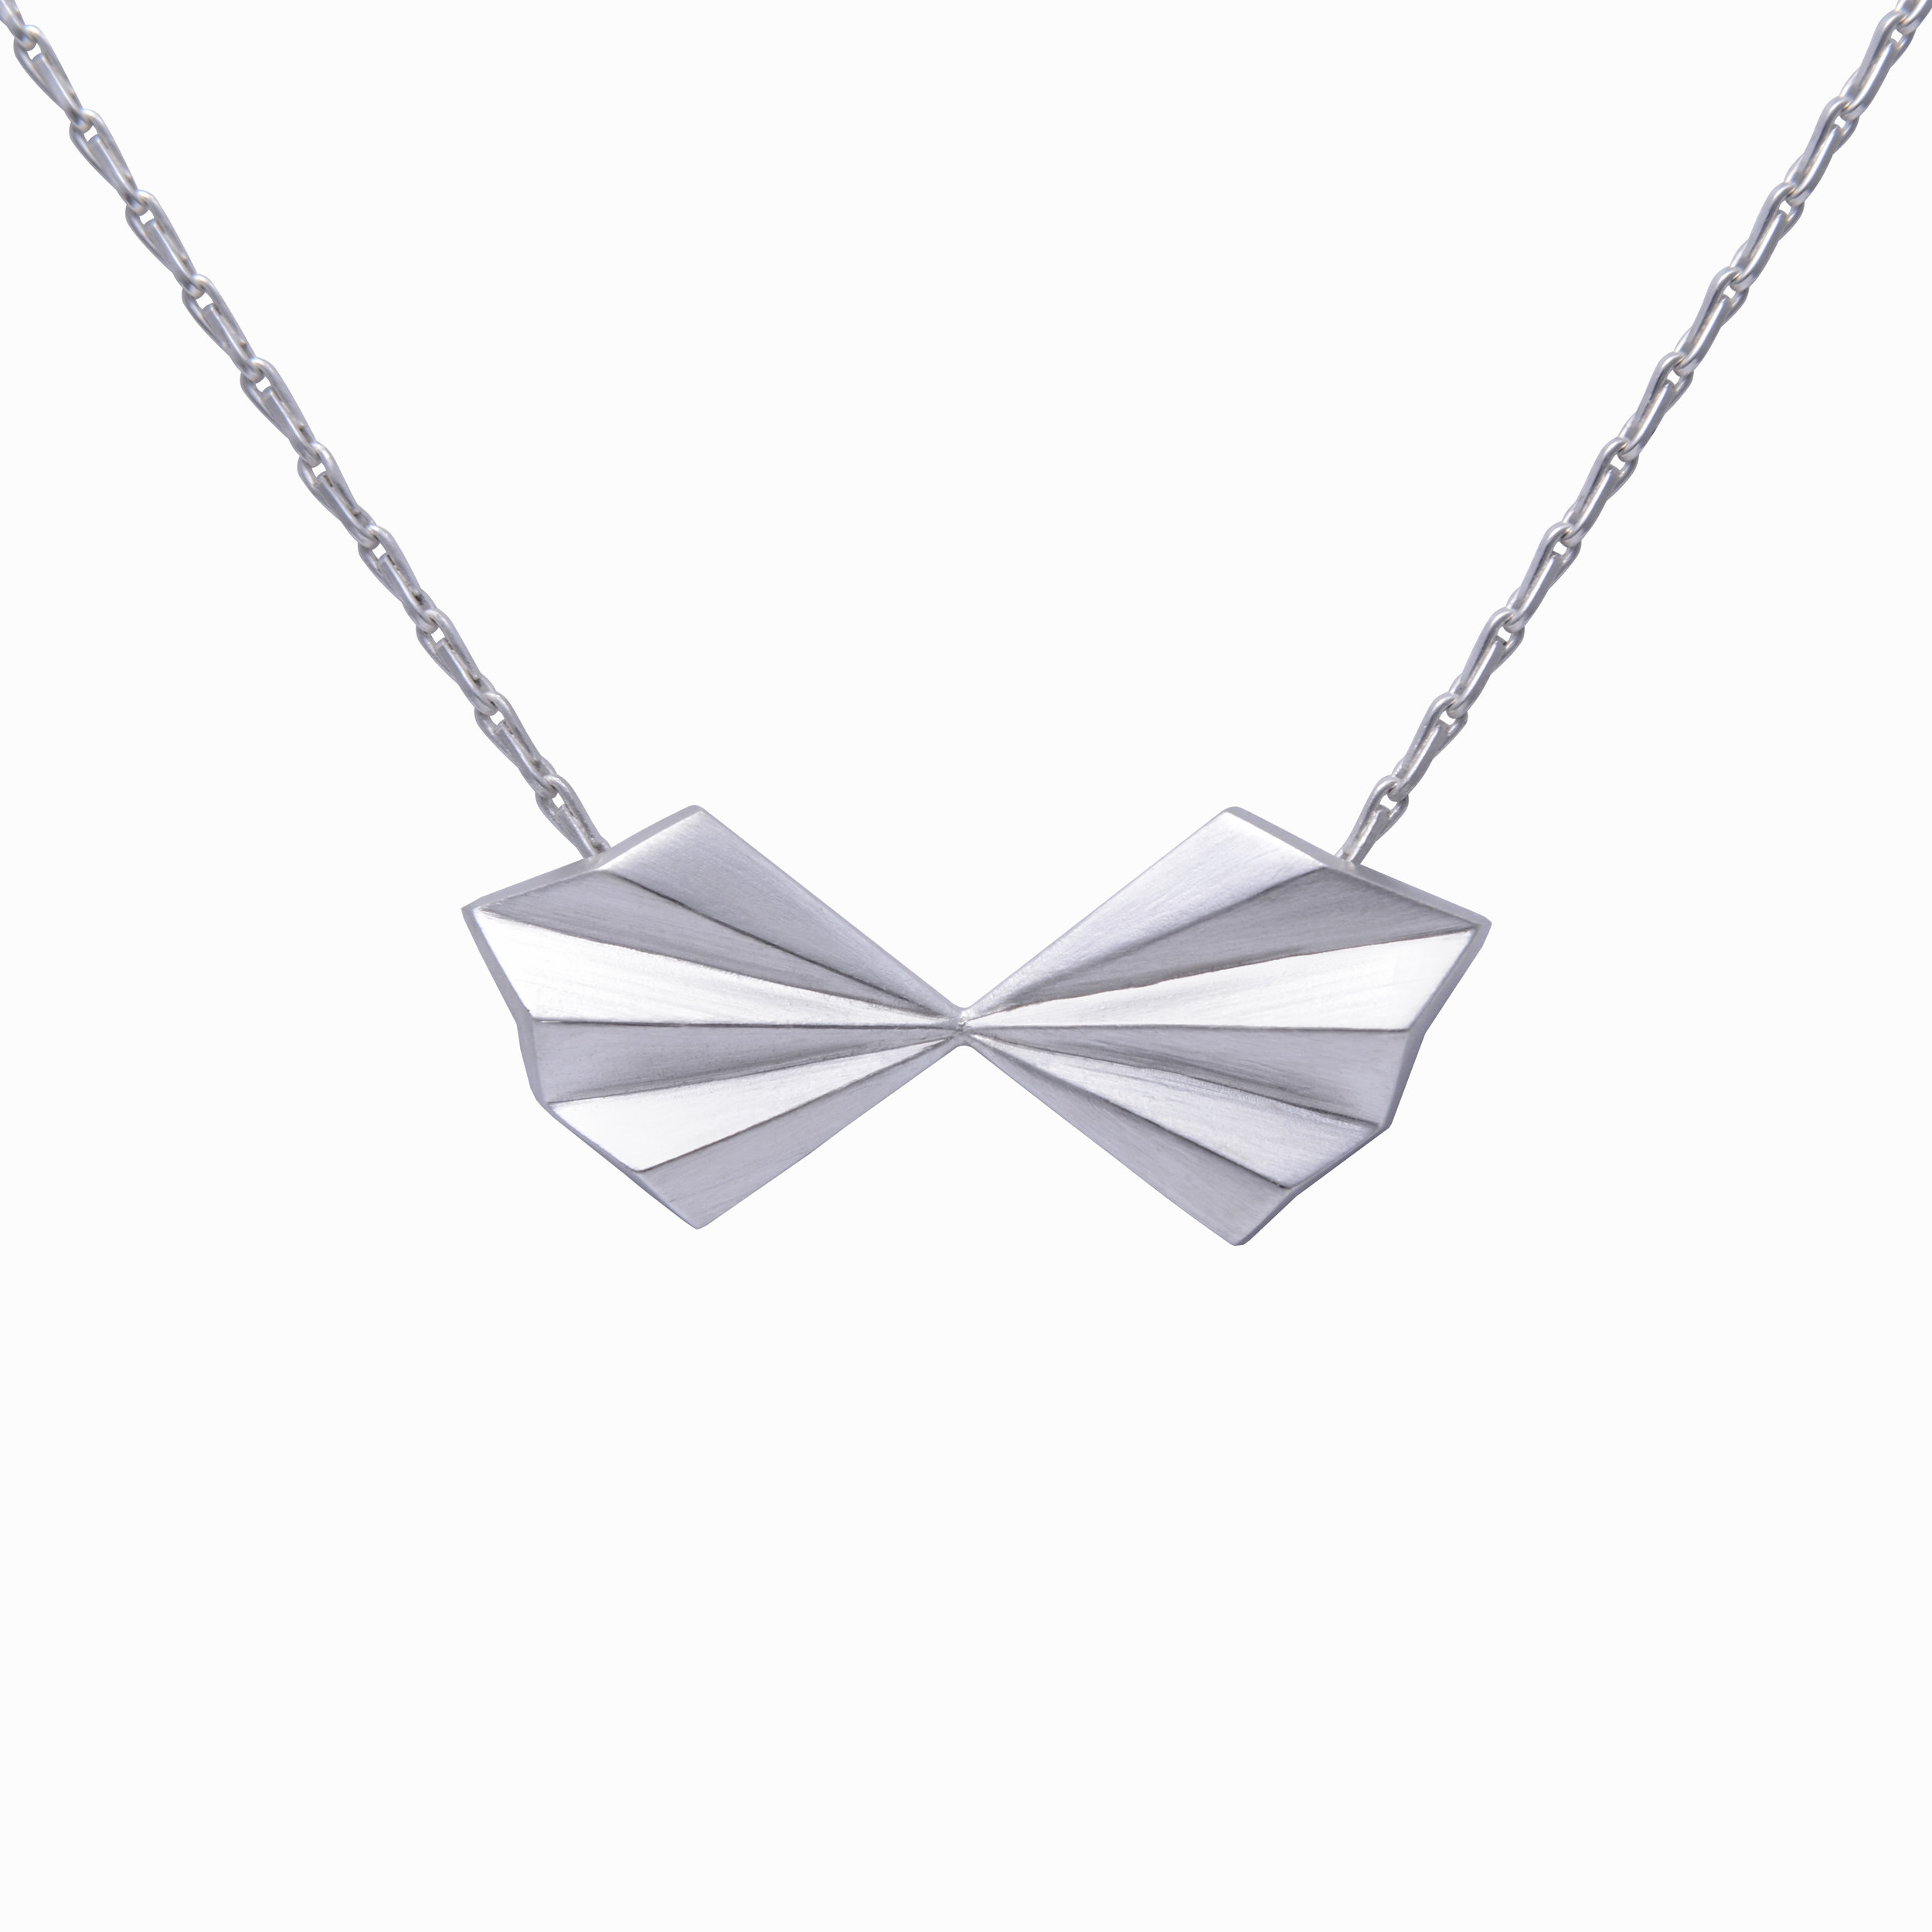 Alice Barnes, Silver Pleated Bow Necklace.jpg